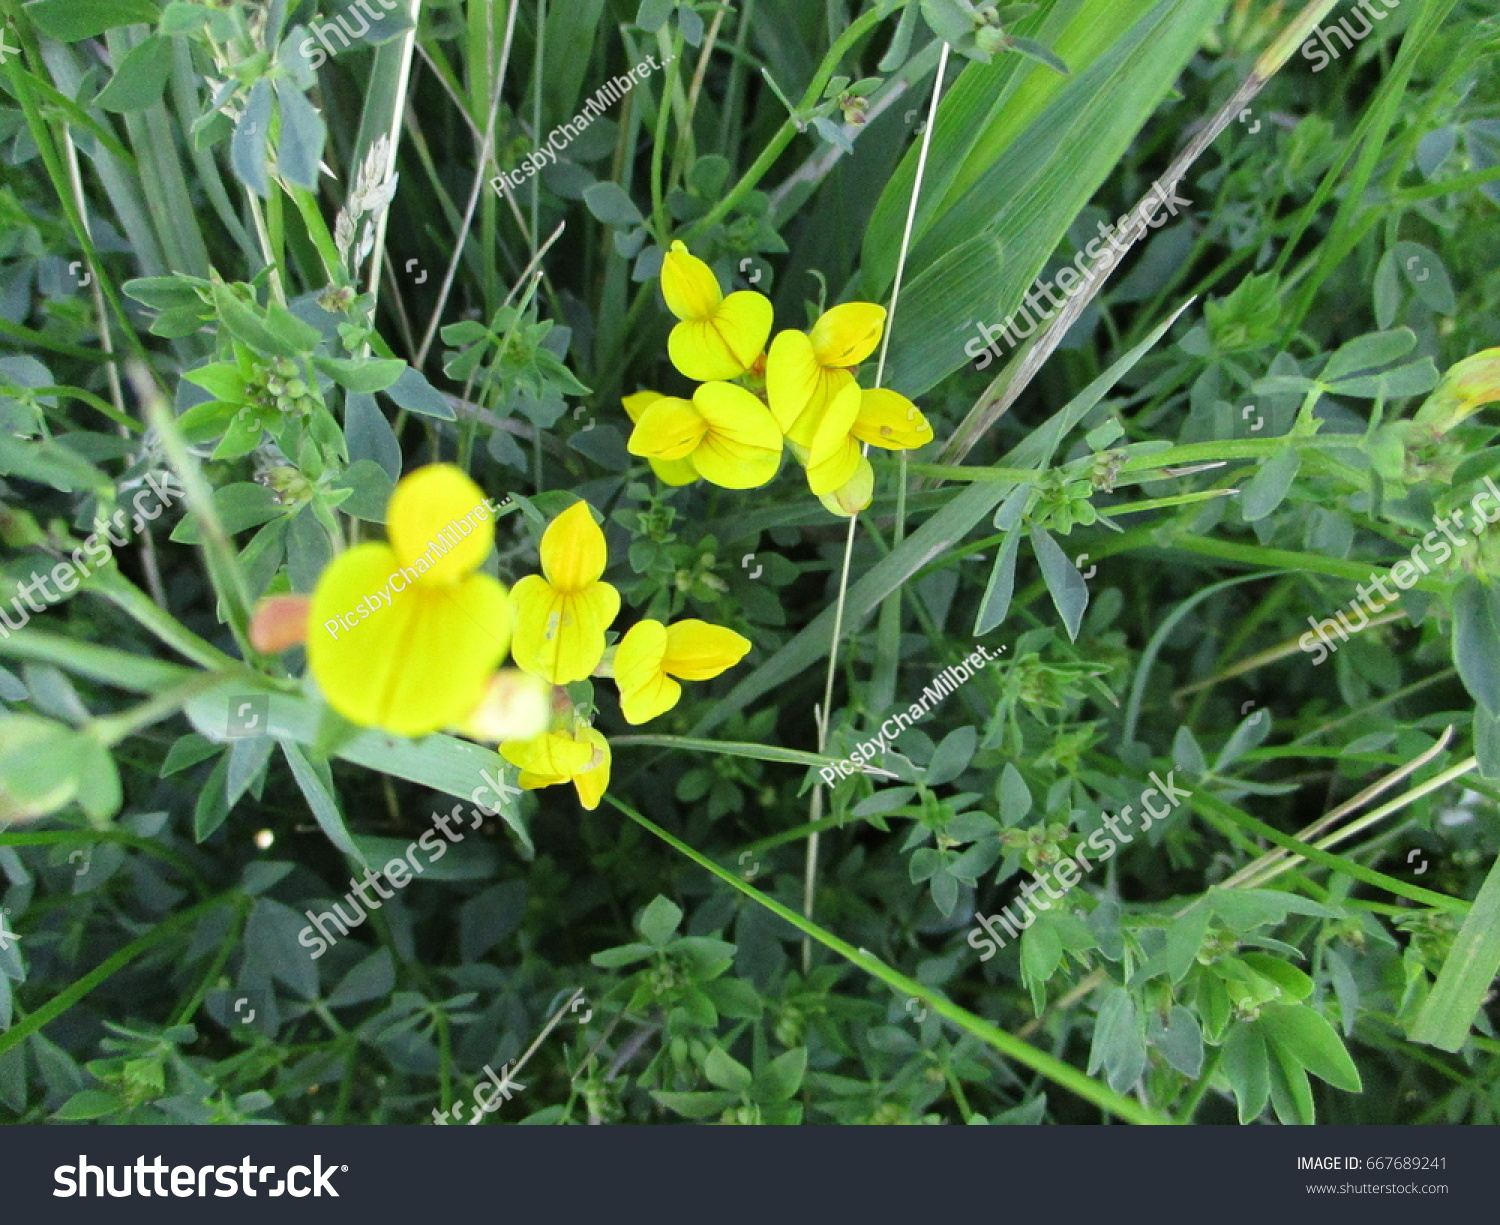 Yellow Flower On Ditch Weed Stock Photo Edit Now 667689241